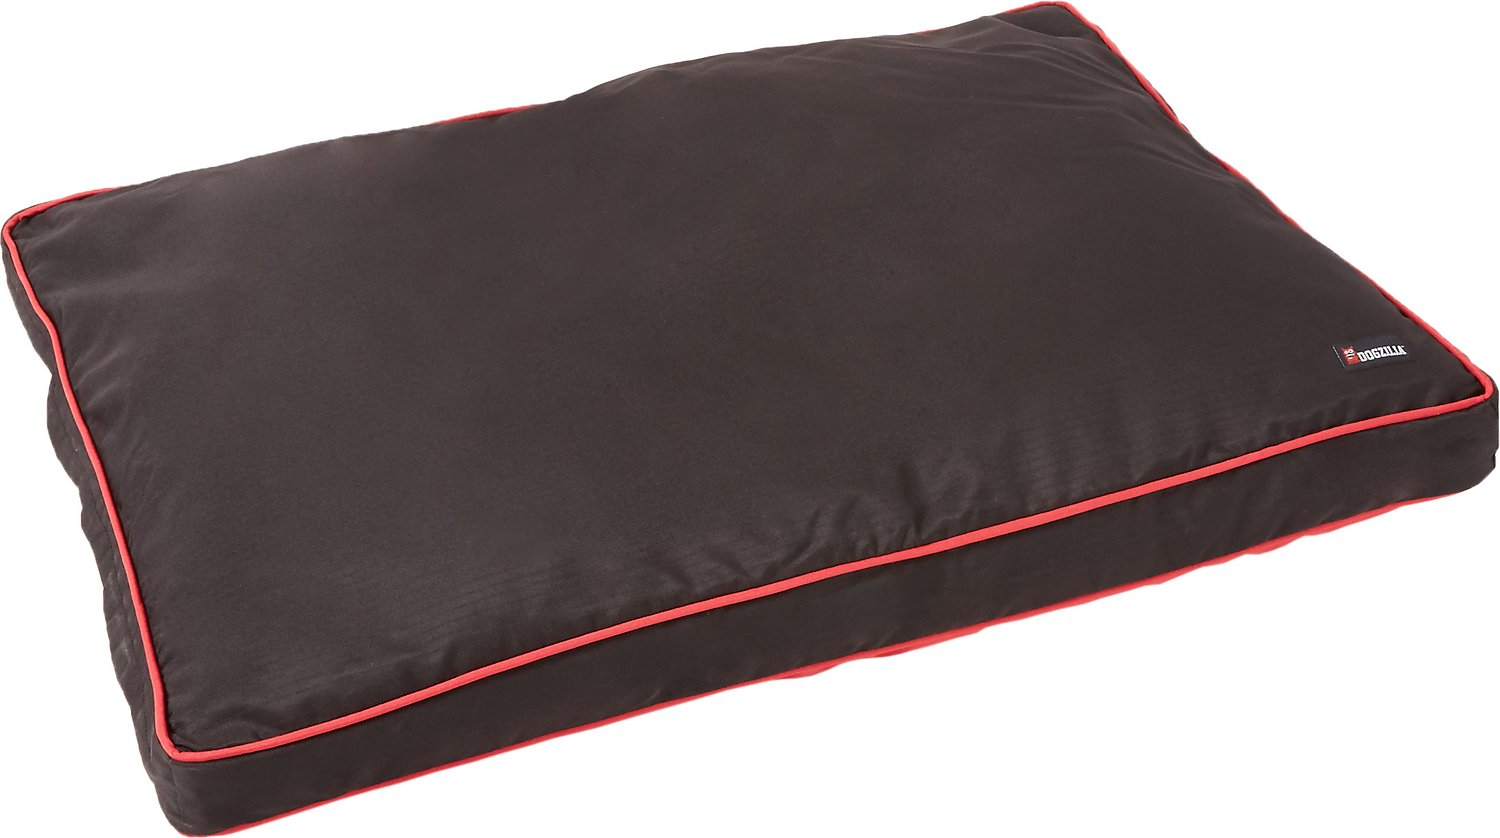 Dogzilla Gusseted Pillow Pet Bed, Red/Black